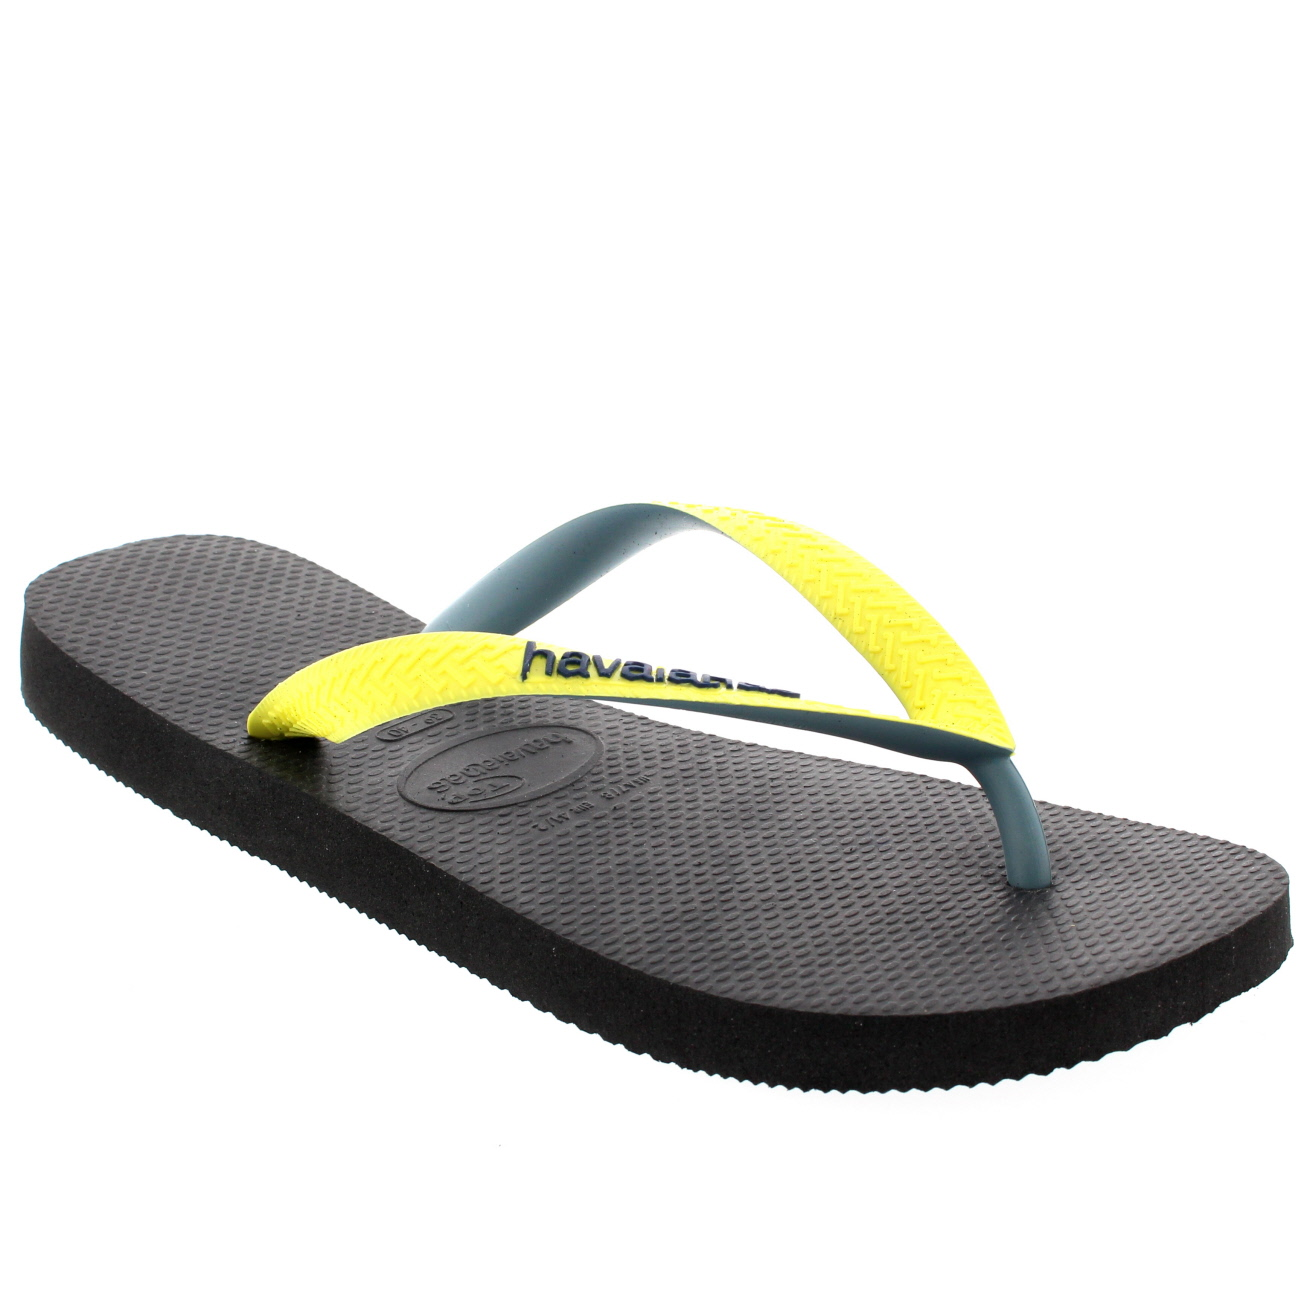 a535d07cca96 Ladies Havaianas Top Mix Beach Festival Pool Holiday Flip Flop ...